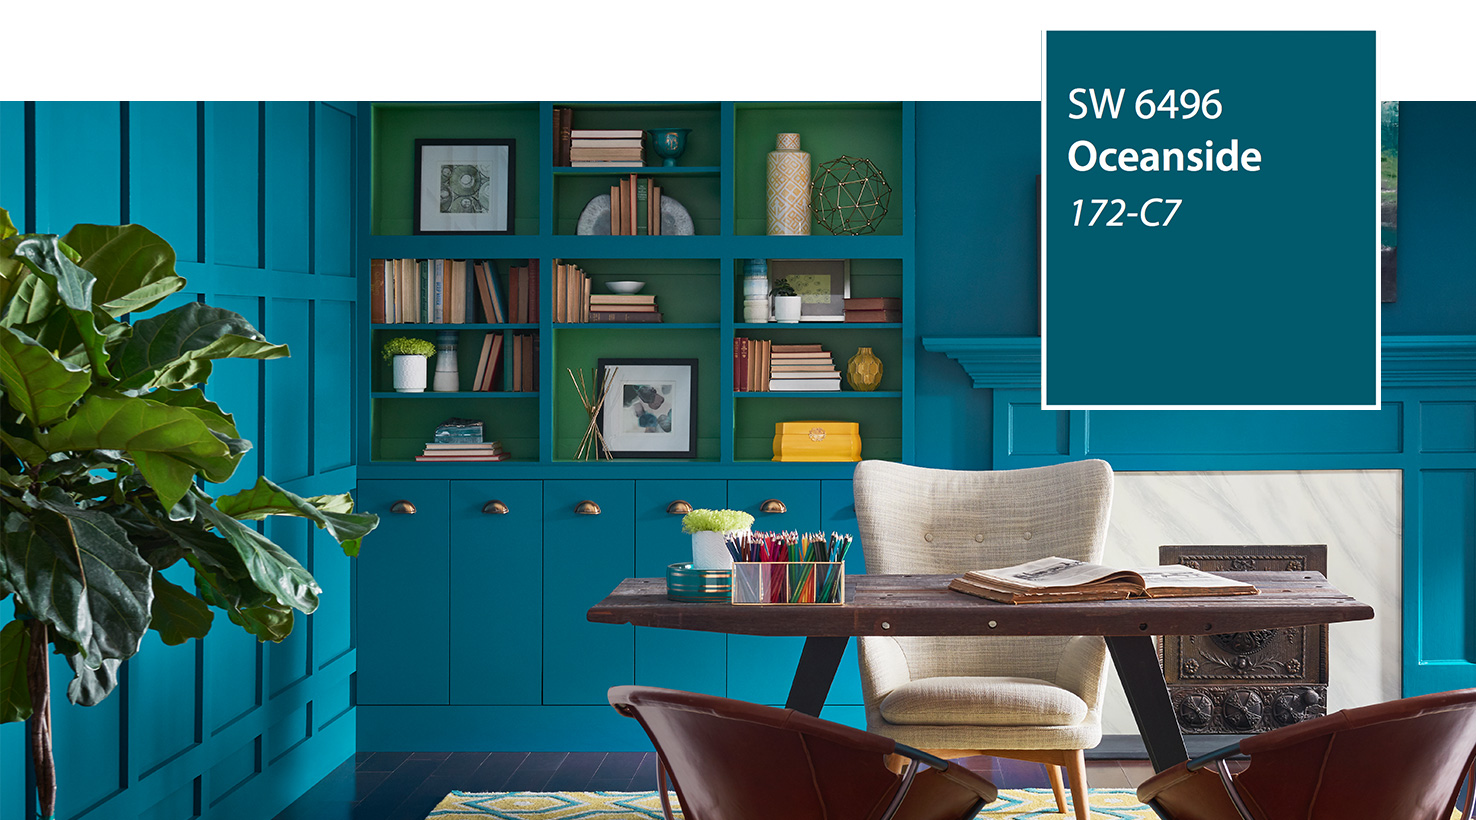 Sherwin Williams Color of the year 2018 - Oceanside